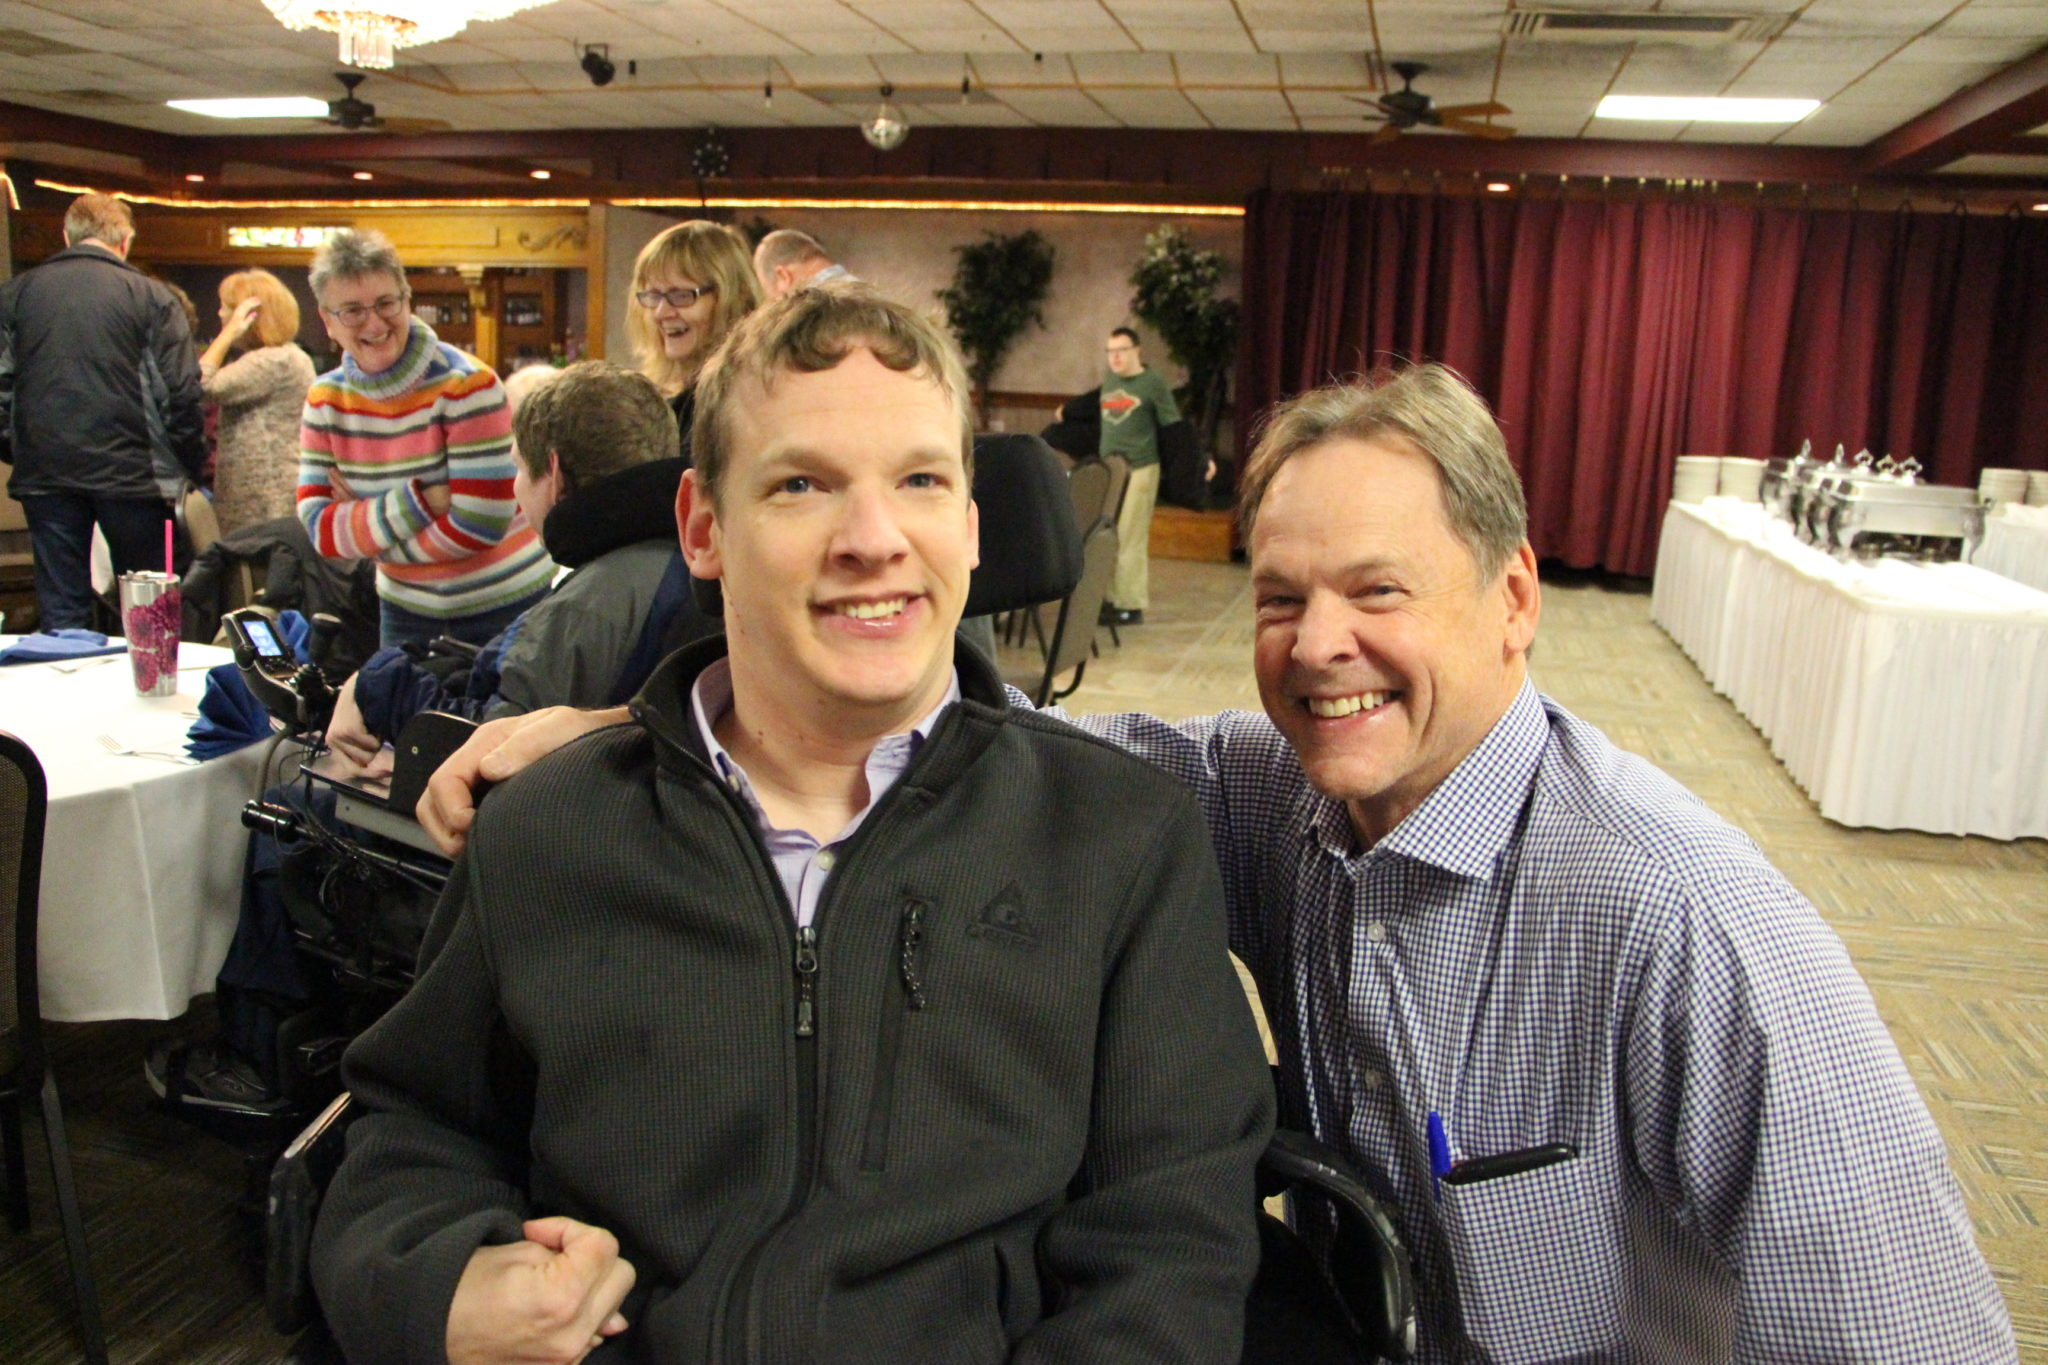 Jameson and Tom pose together at Achieve's Fall Fundraiser